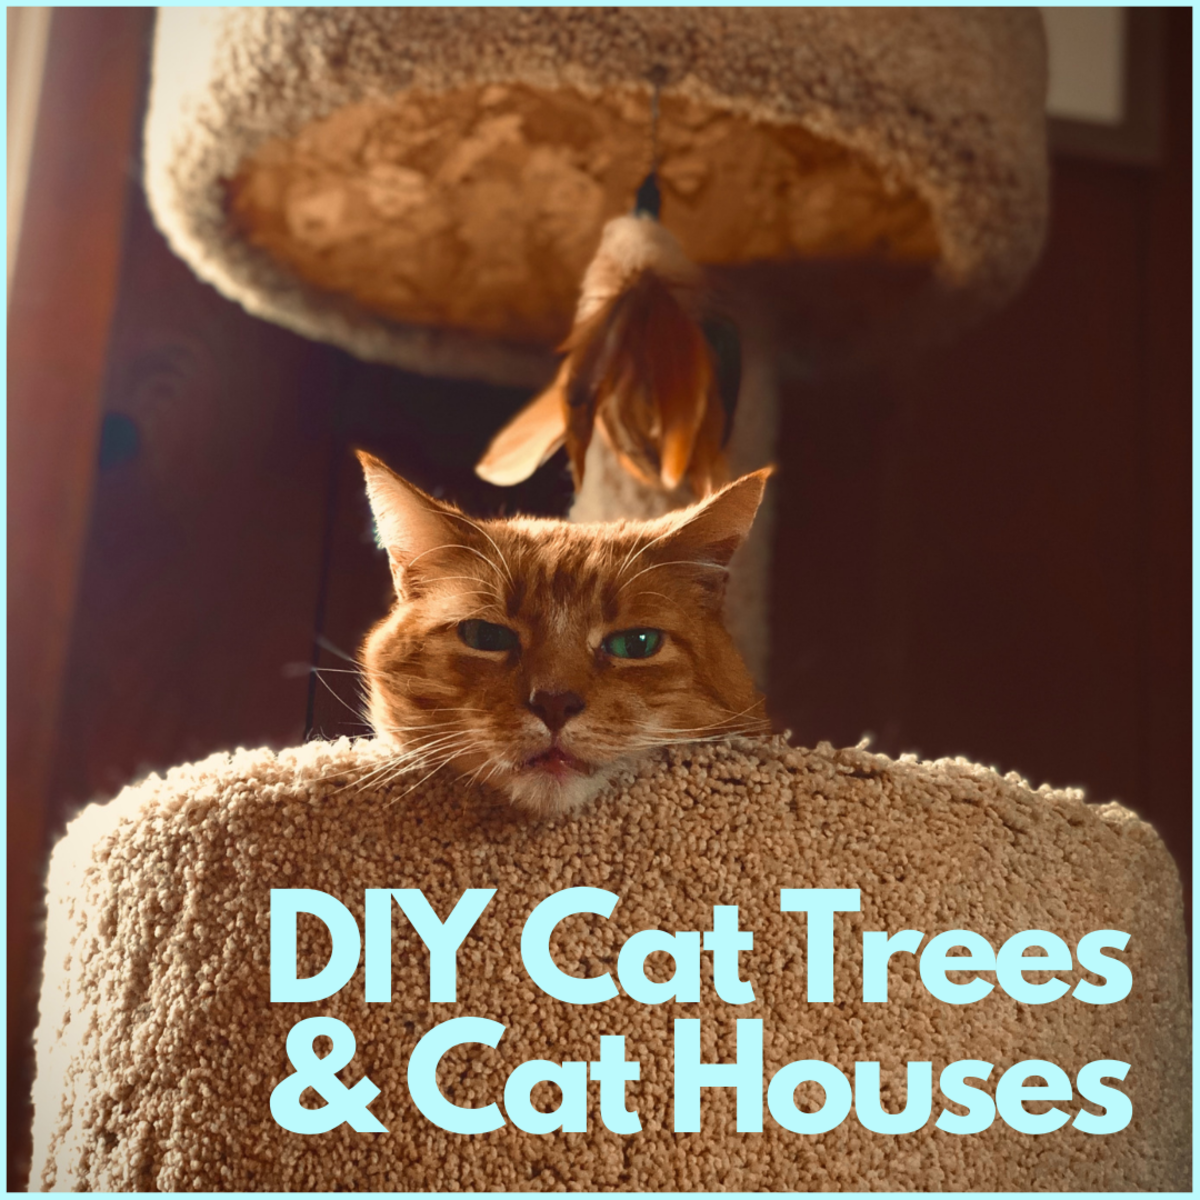 Check out these project ideas and make a special place for your kitty.